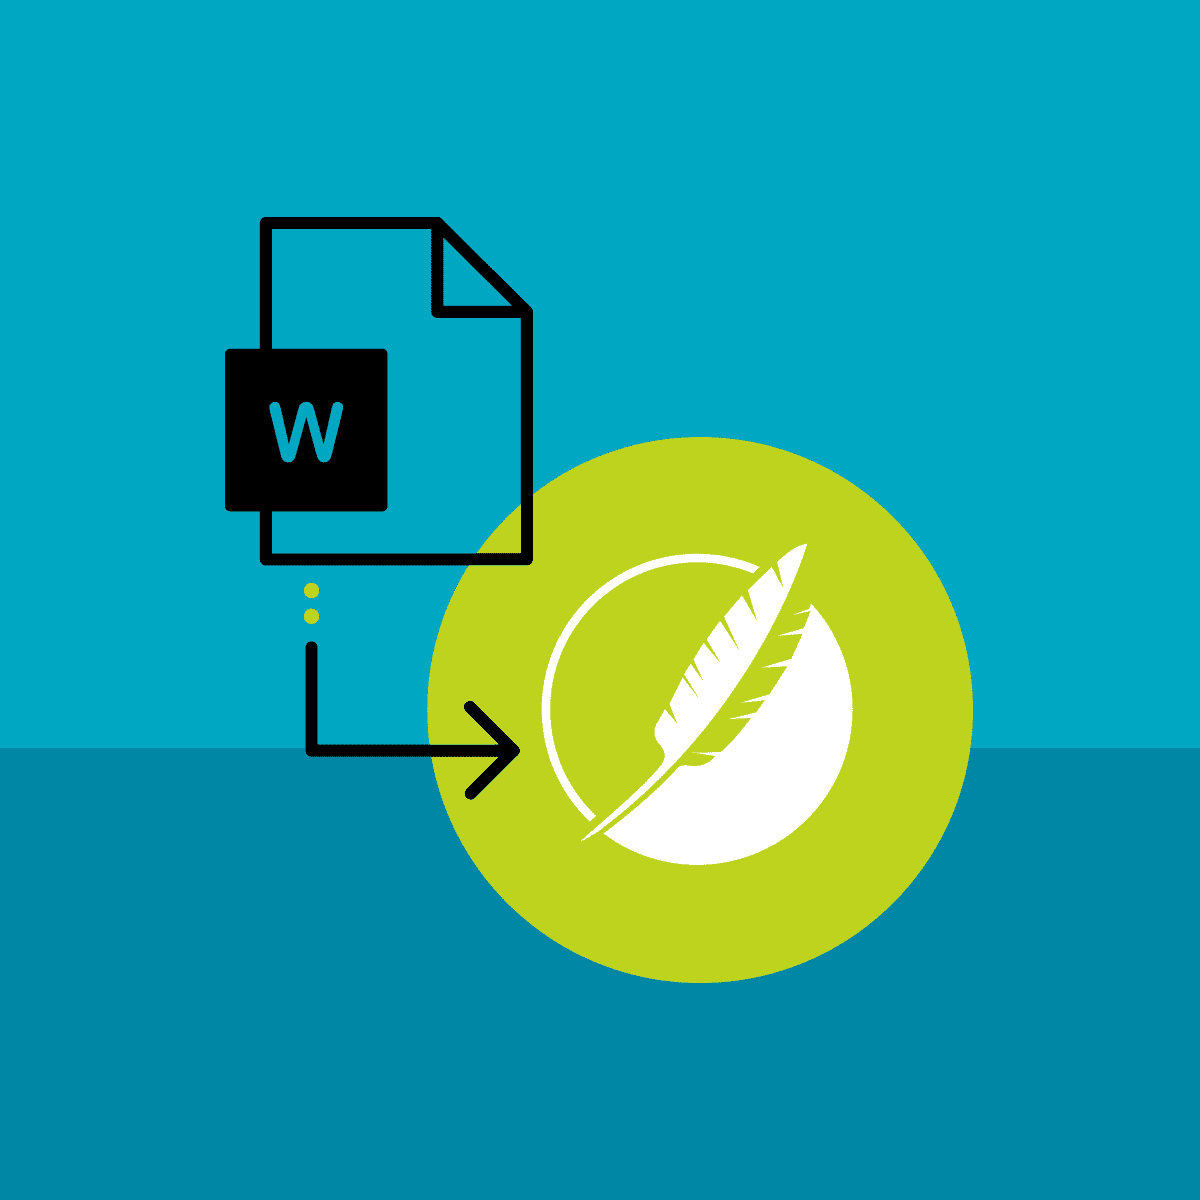 Importing Microsoft Word files to MadCap Flare